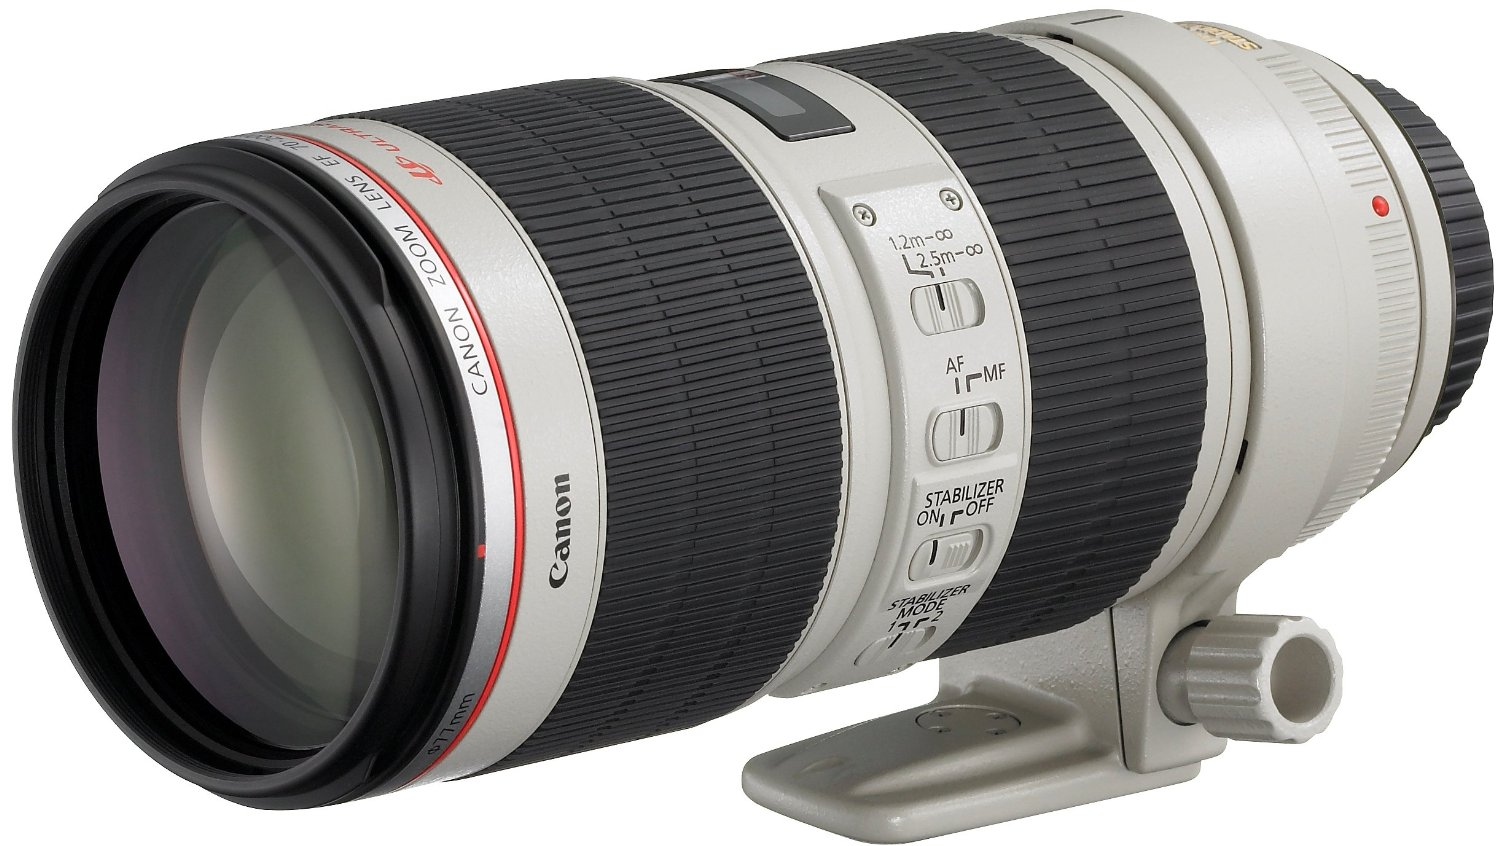 70-200mm f/2.8 - This Canon